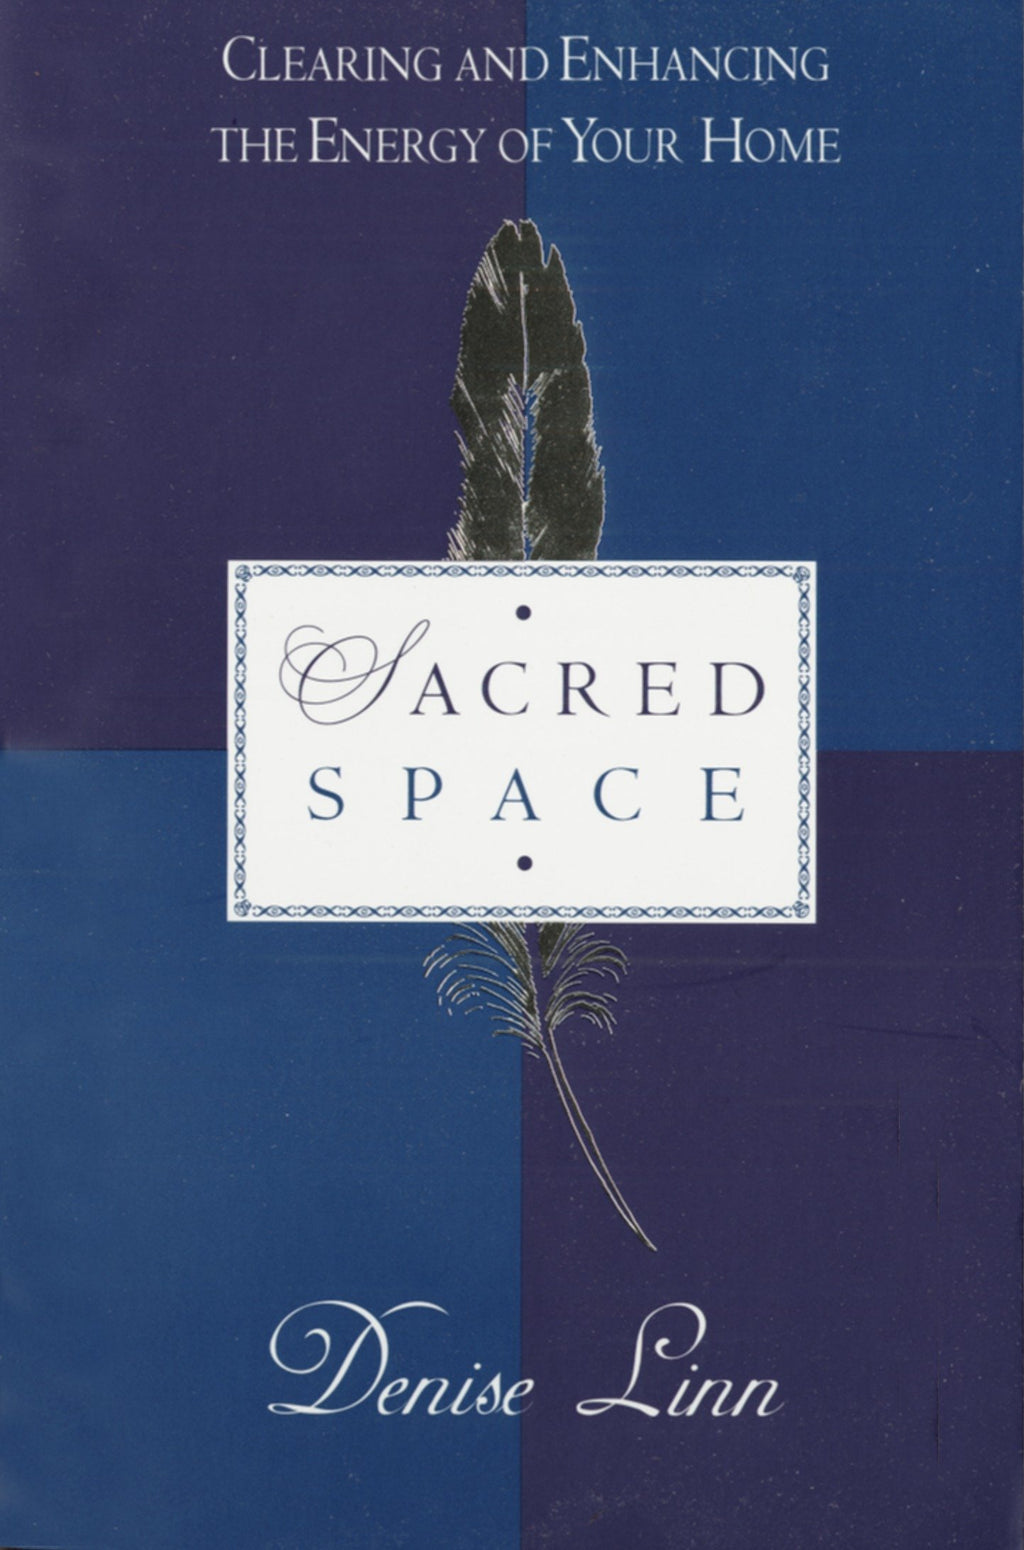 Sacred Space by Denise Linn